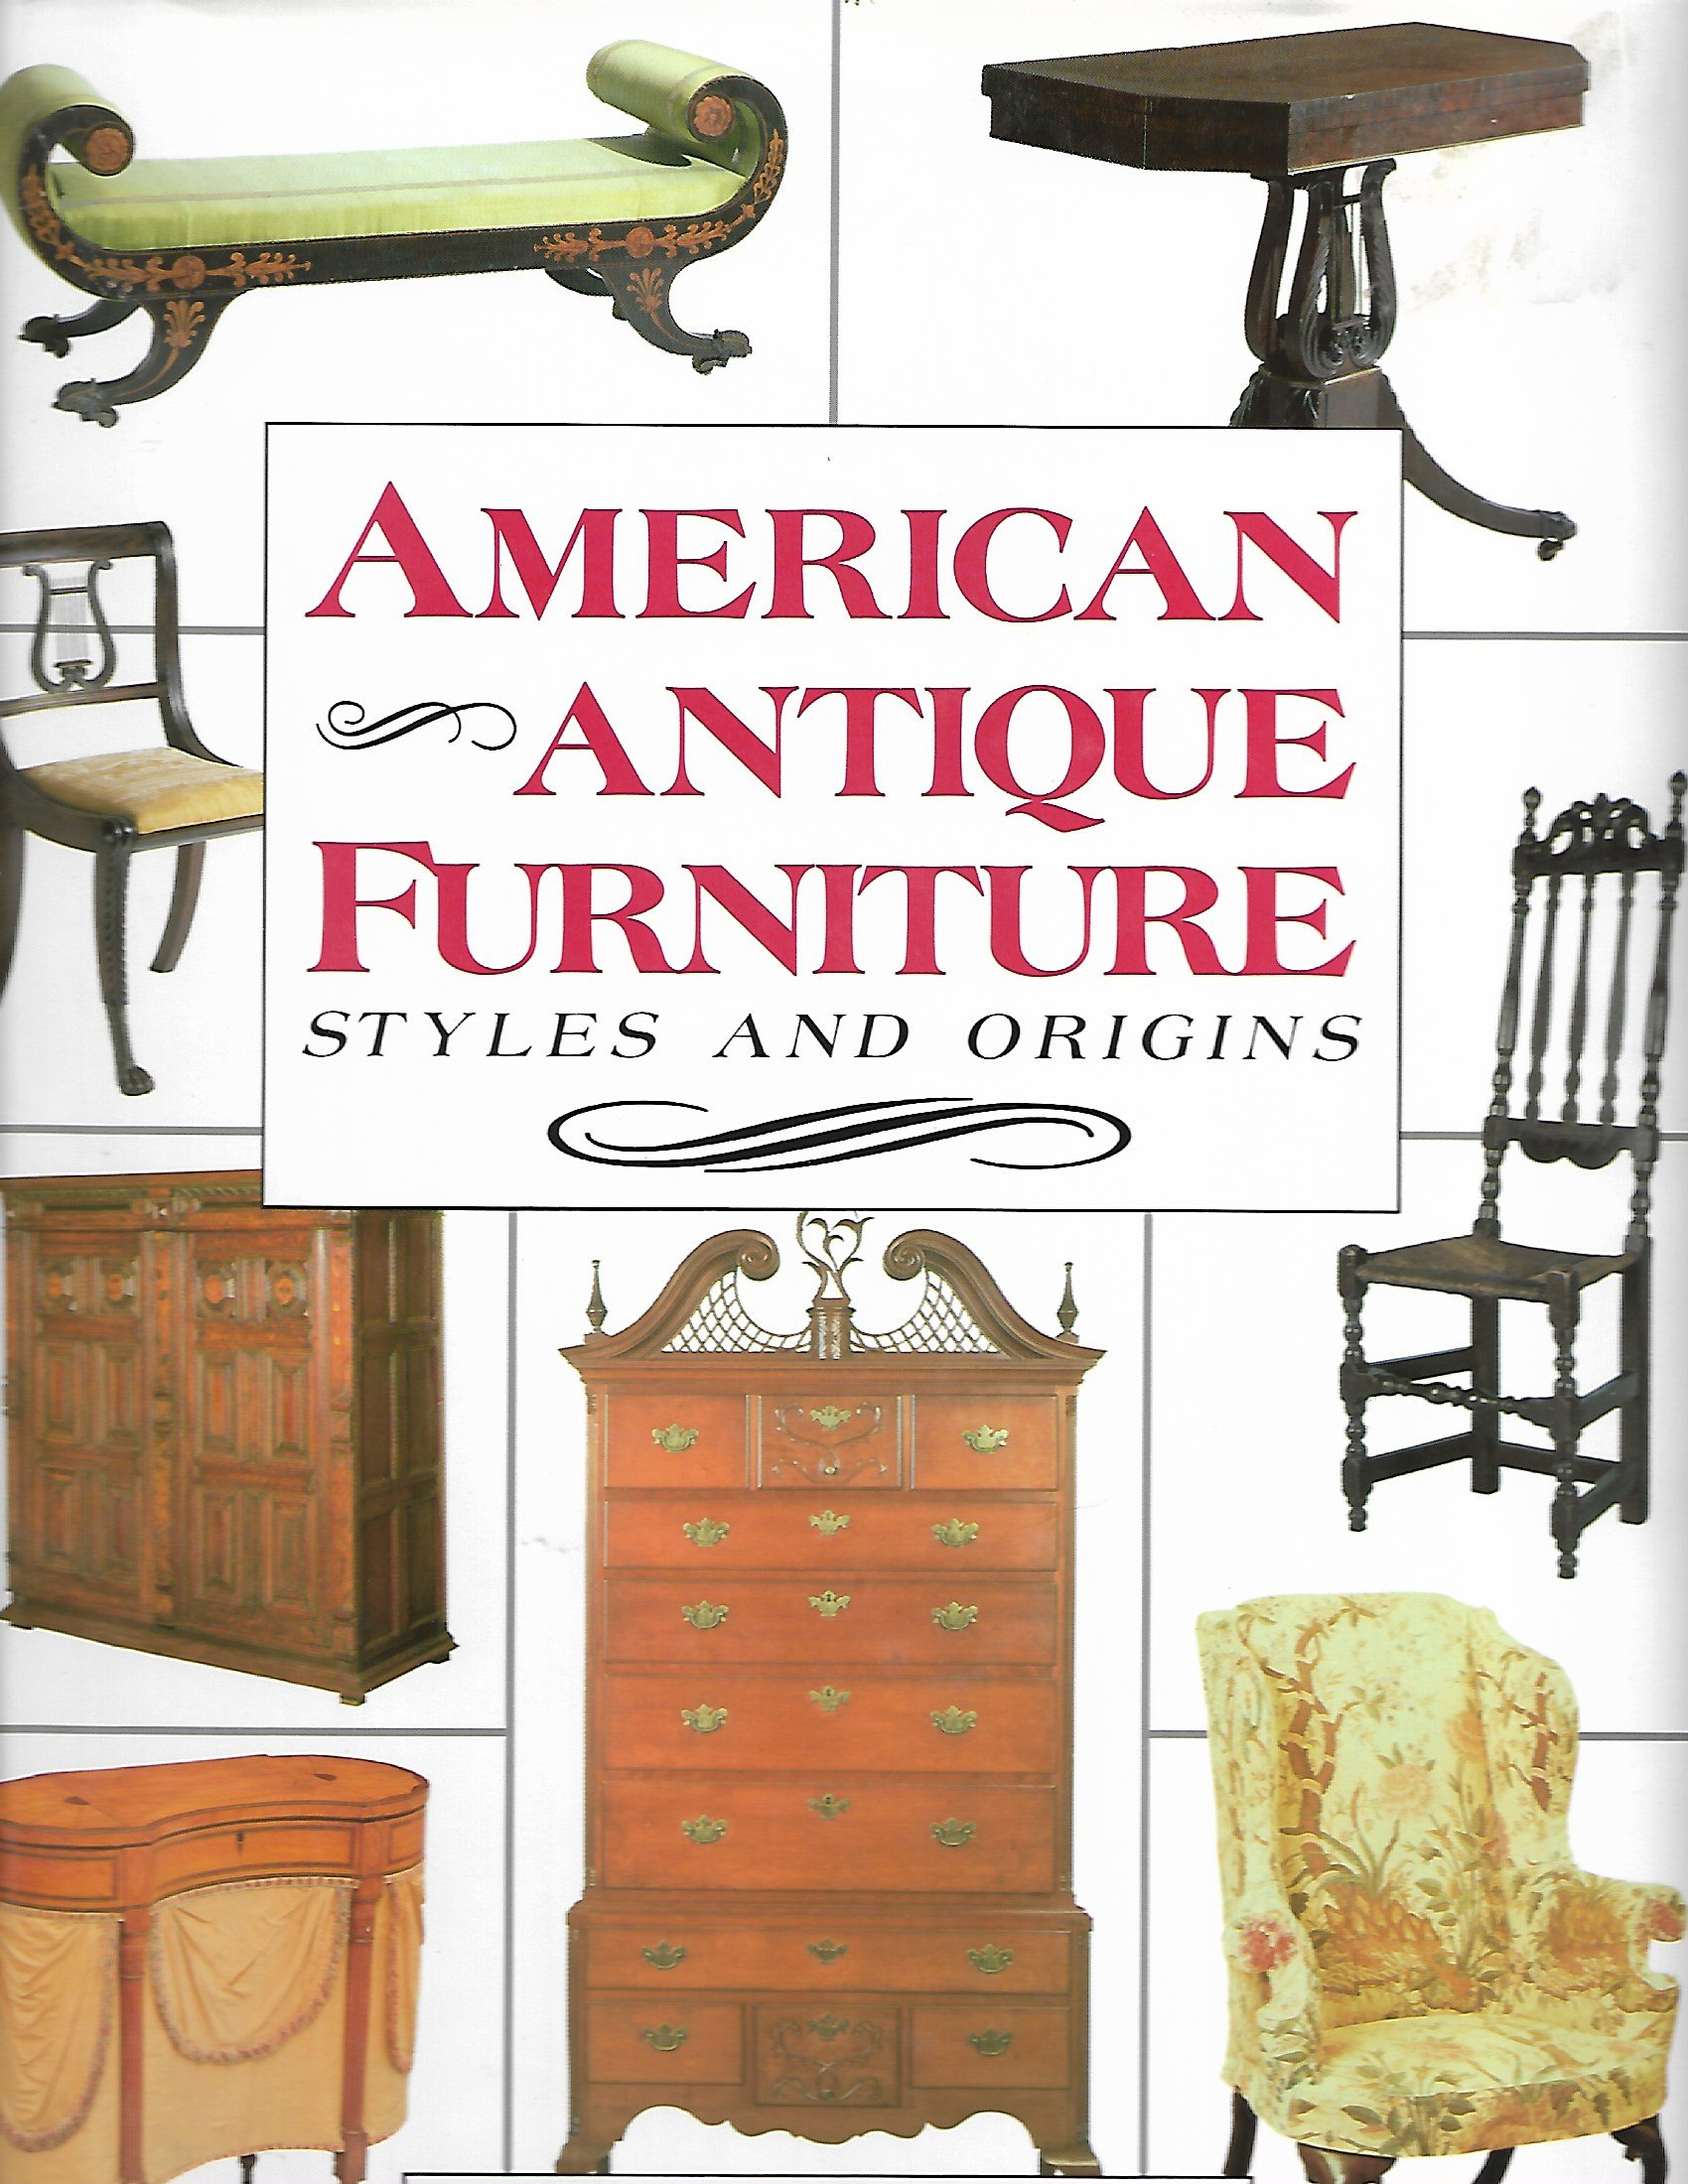 American Antique Furniture: Styles and Origins